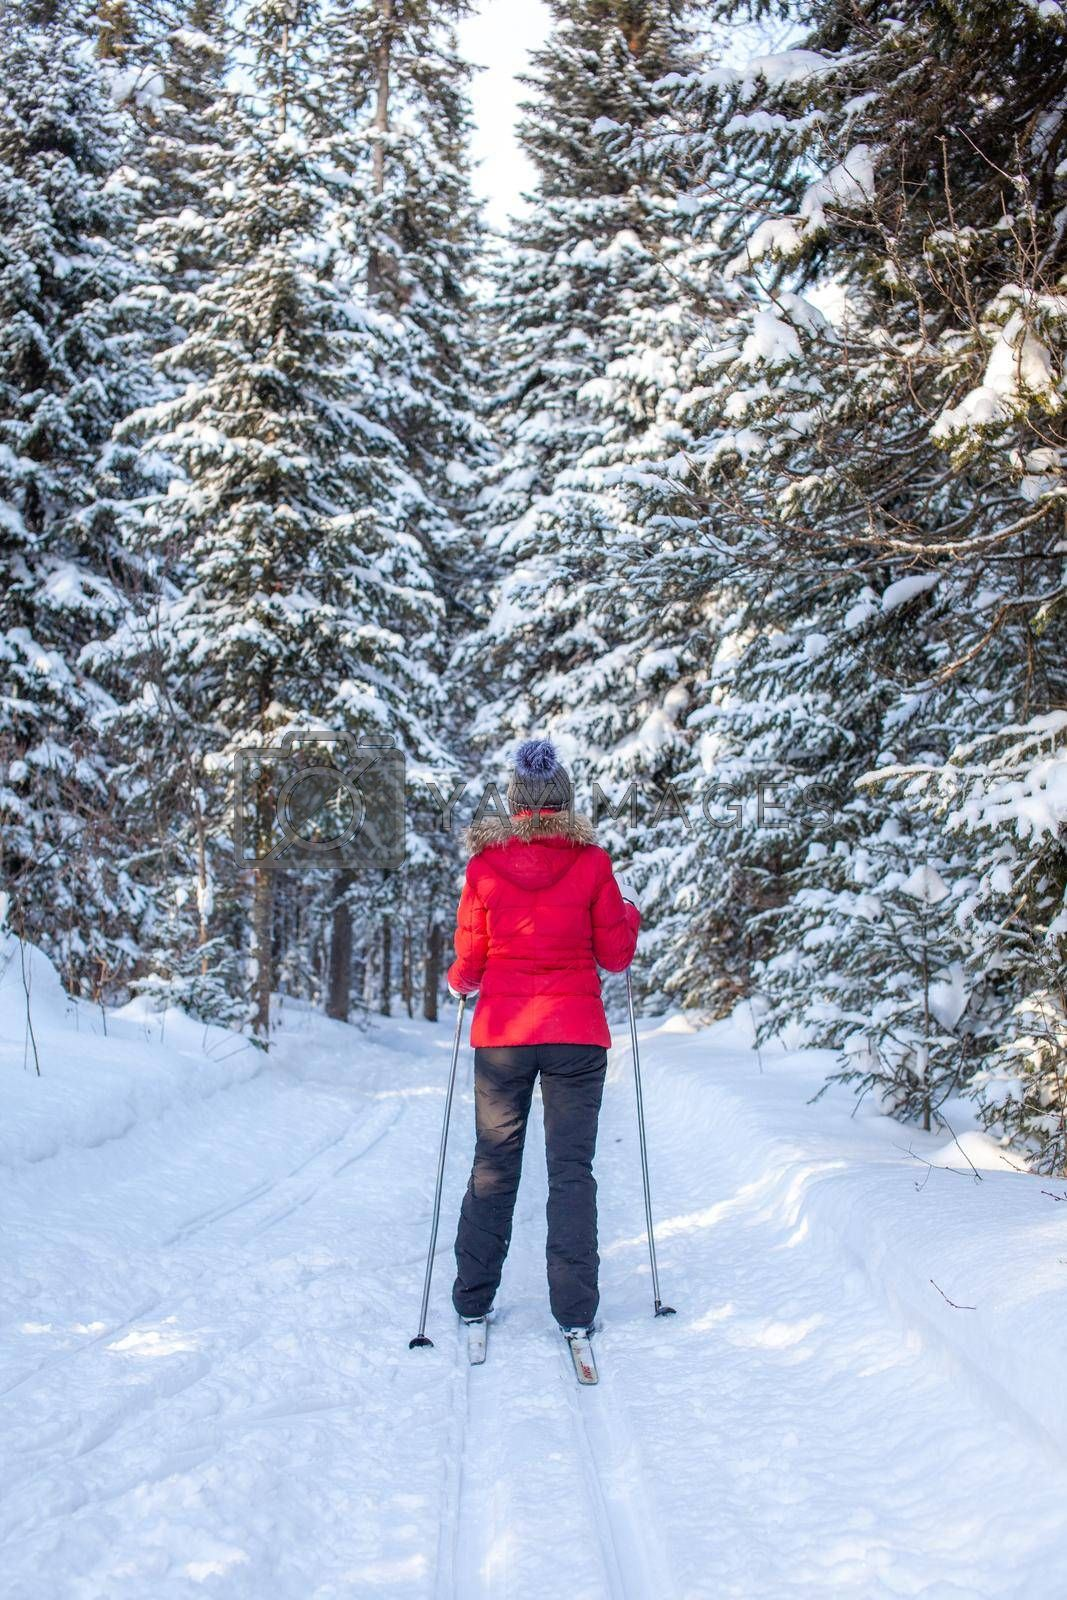 A girl in a red jacket goes skiing in a snowy forest in winter.  by AnatoliiFoto